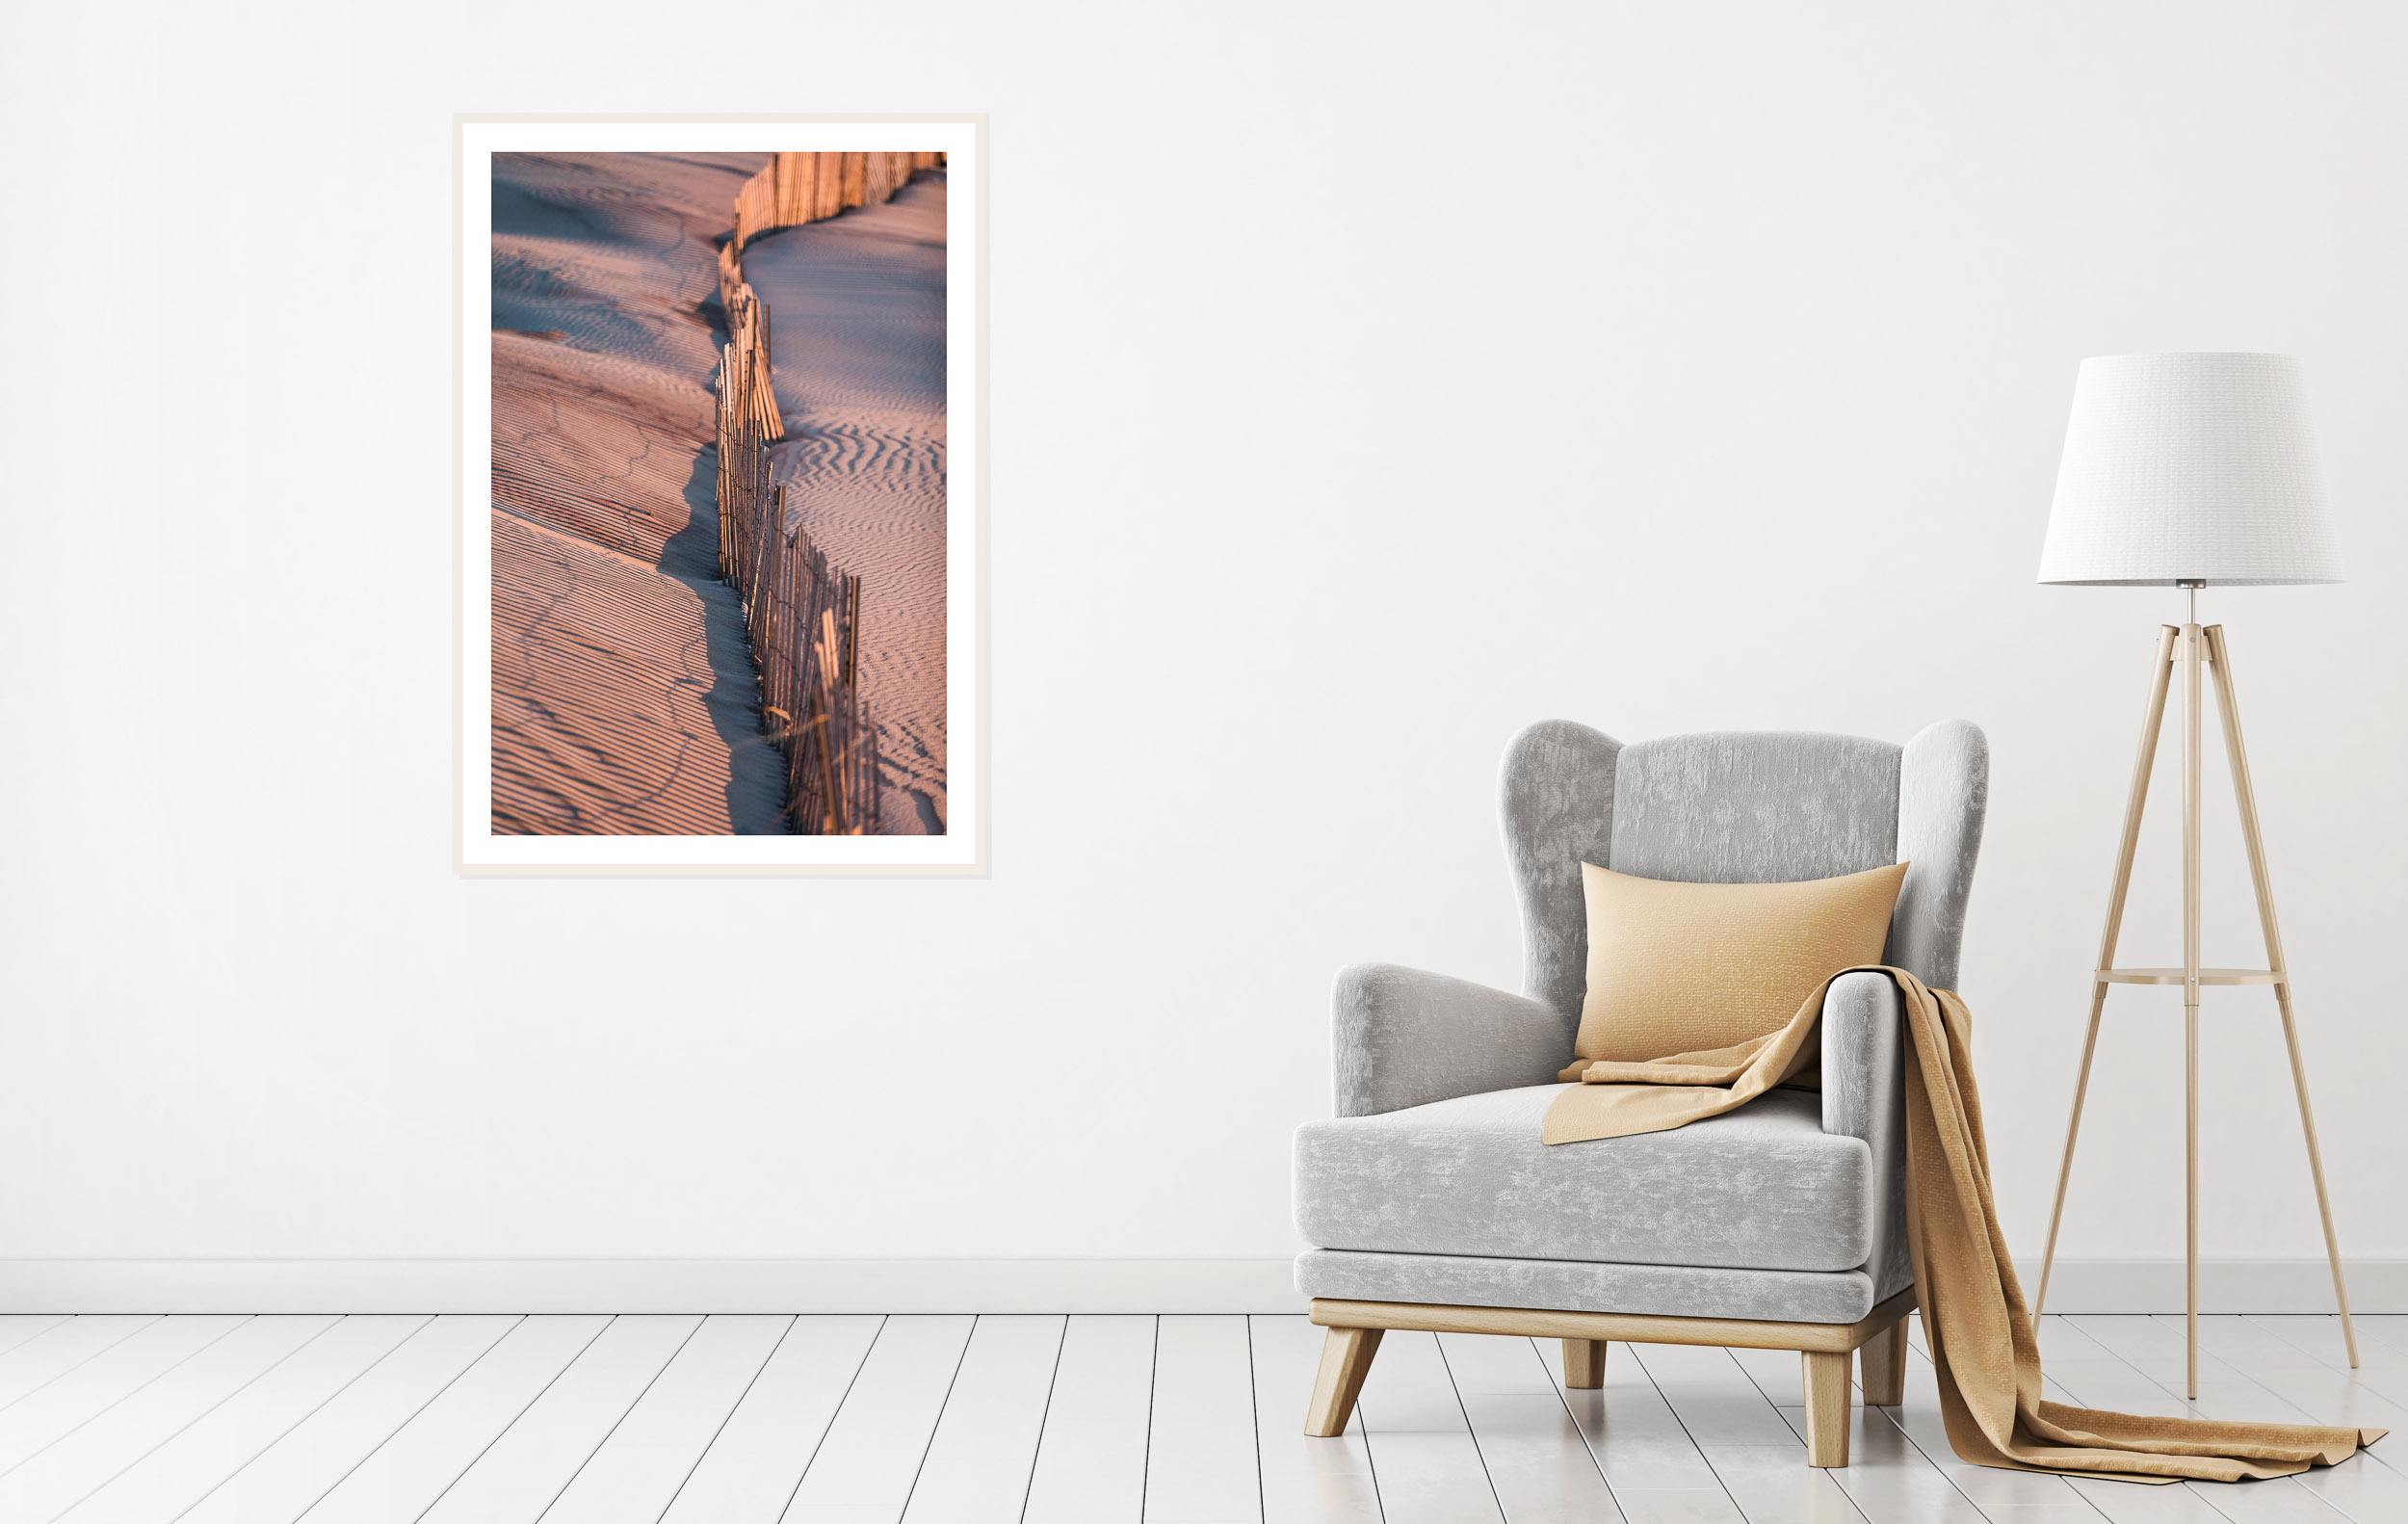 Fine art photography prints bring your walls to life whether decorating your home, business or restaurant.